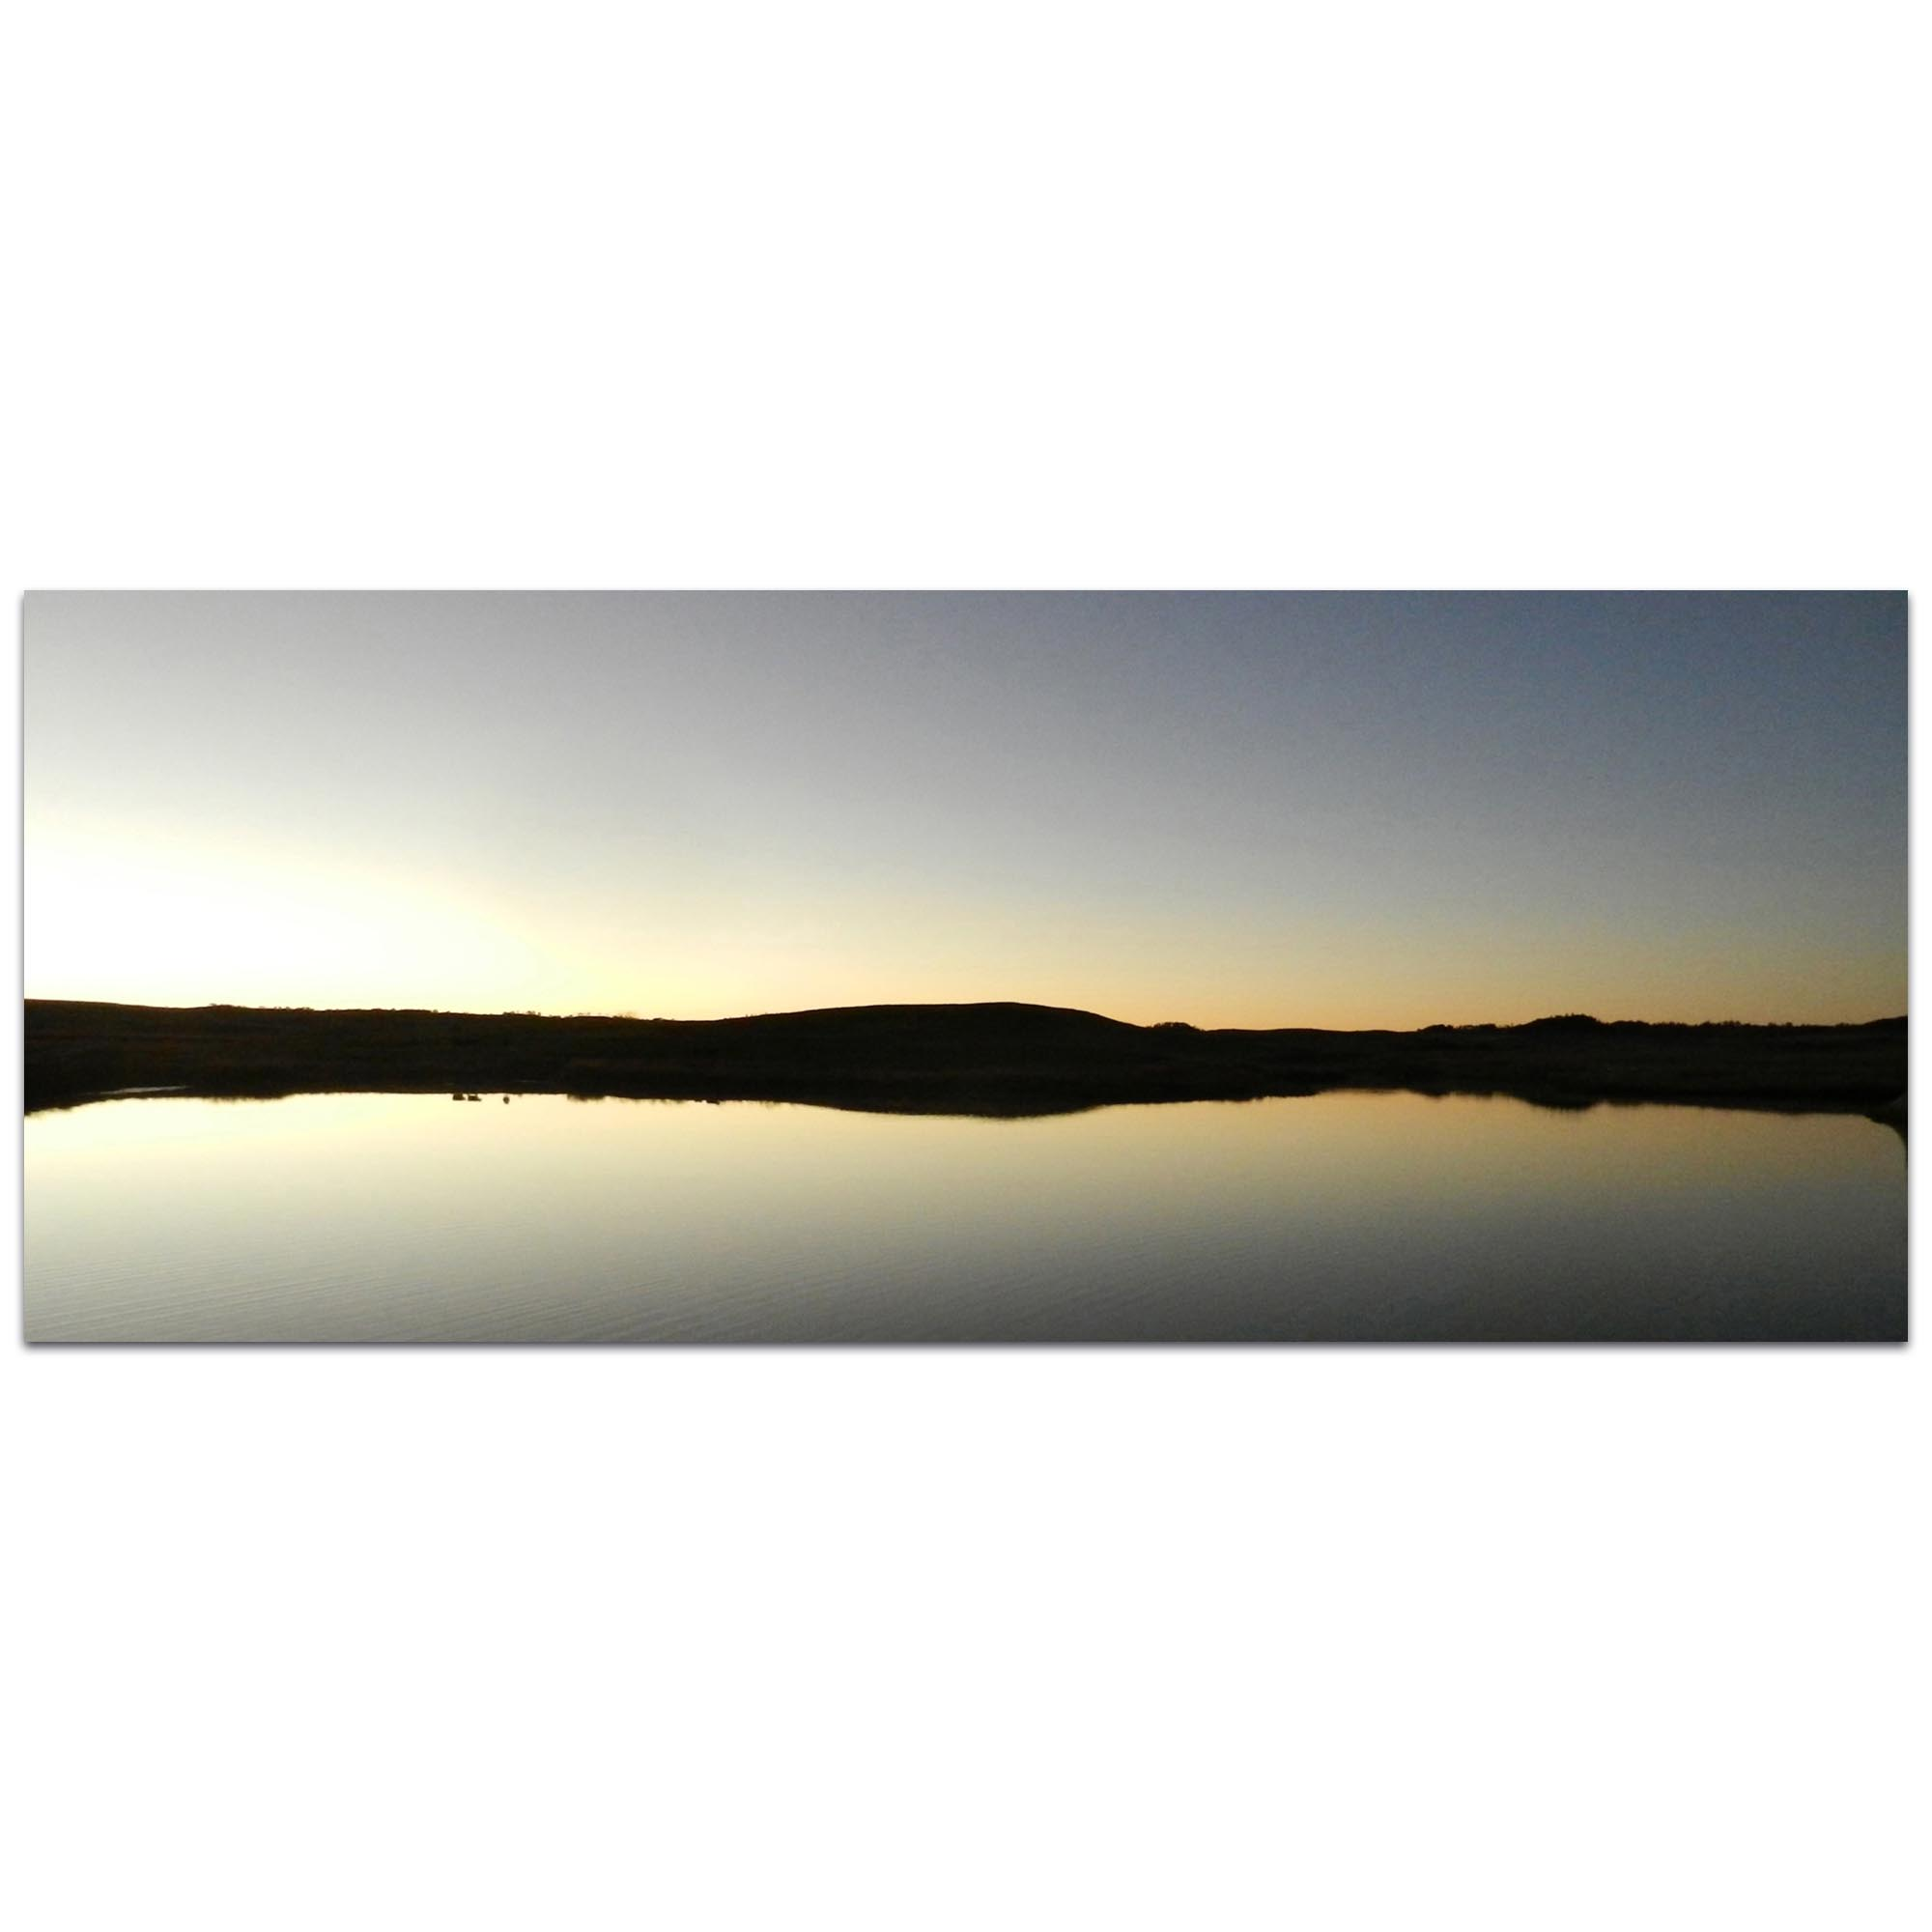 Western Wall Art 'Lakeside Sunset' - American West Decor on Metal or Plexiglass